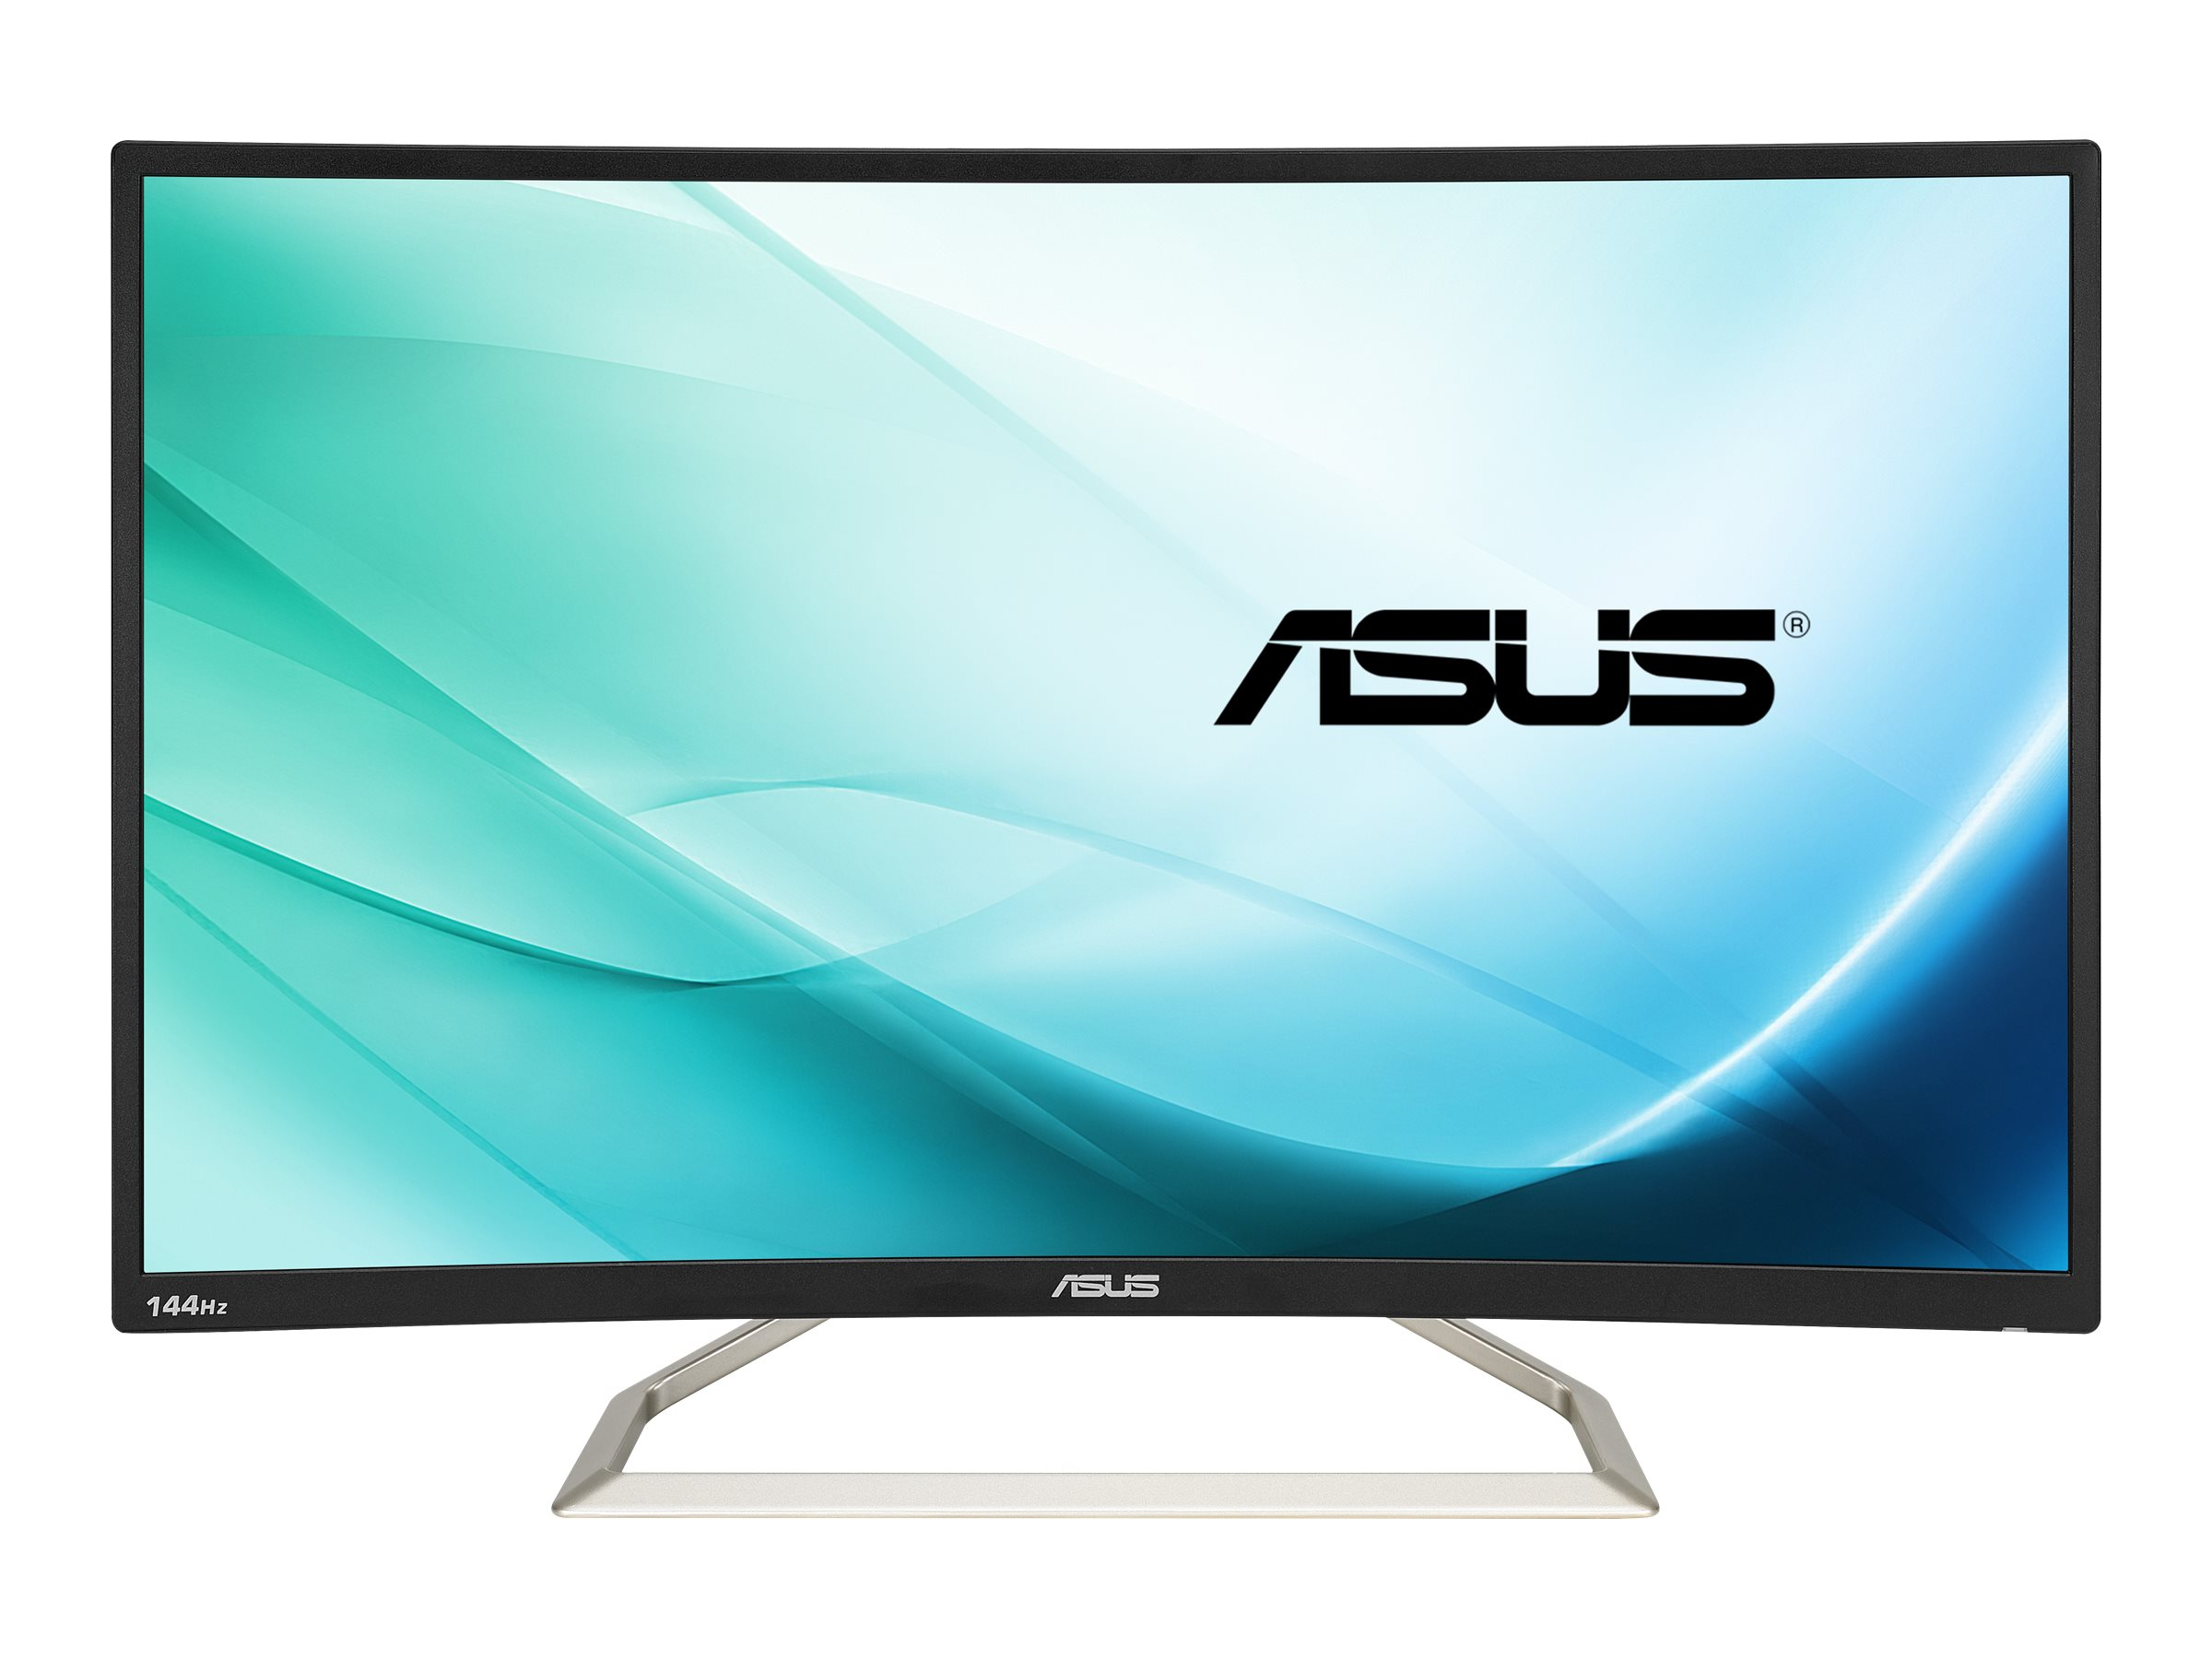 """Image for Asus - Led Monitor - Curved - Full Hd (1080P) - 31.5"""" from Circuit City"""